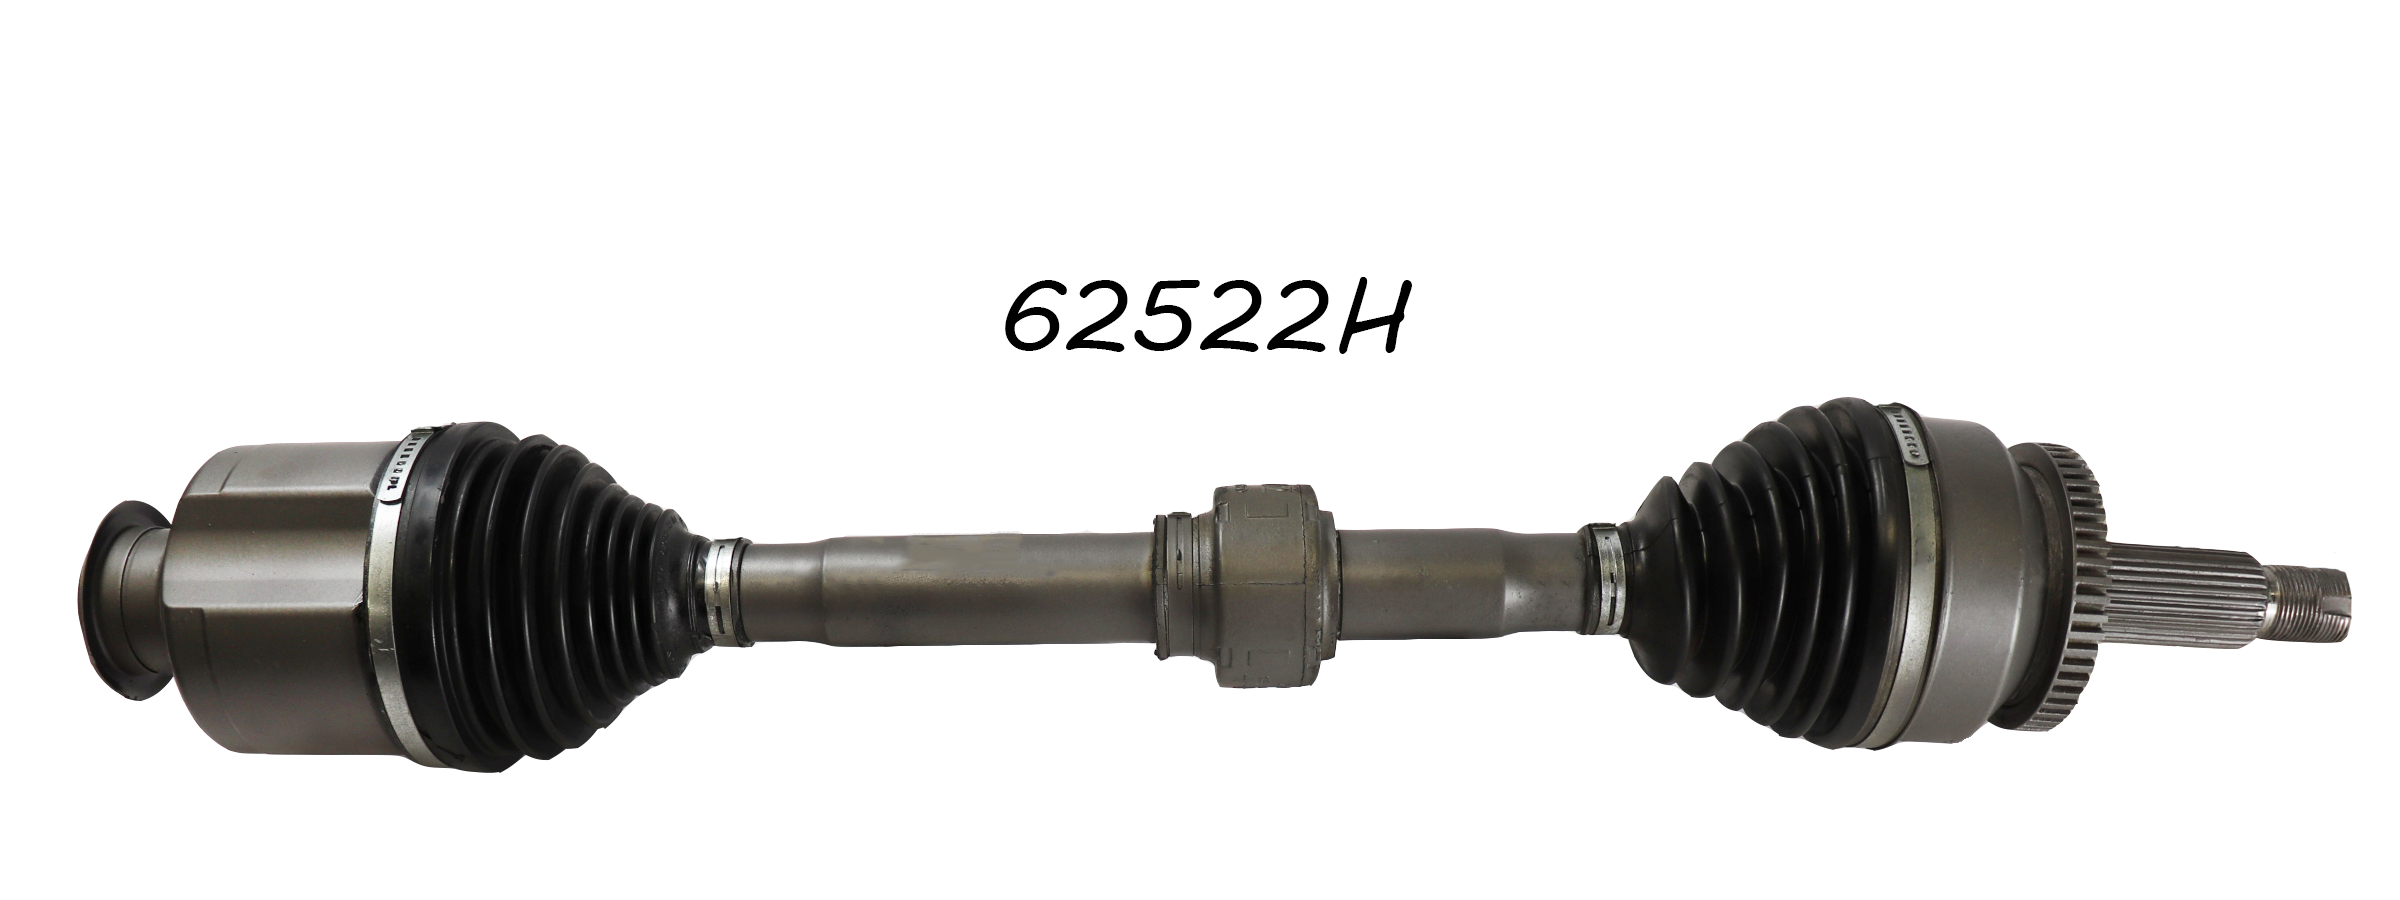 We can rebuild your cars CV axle.